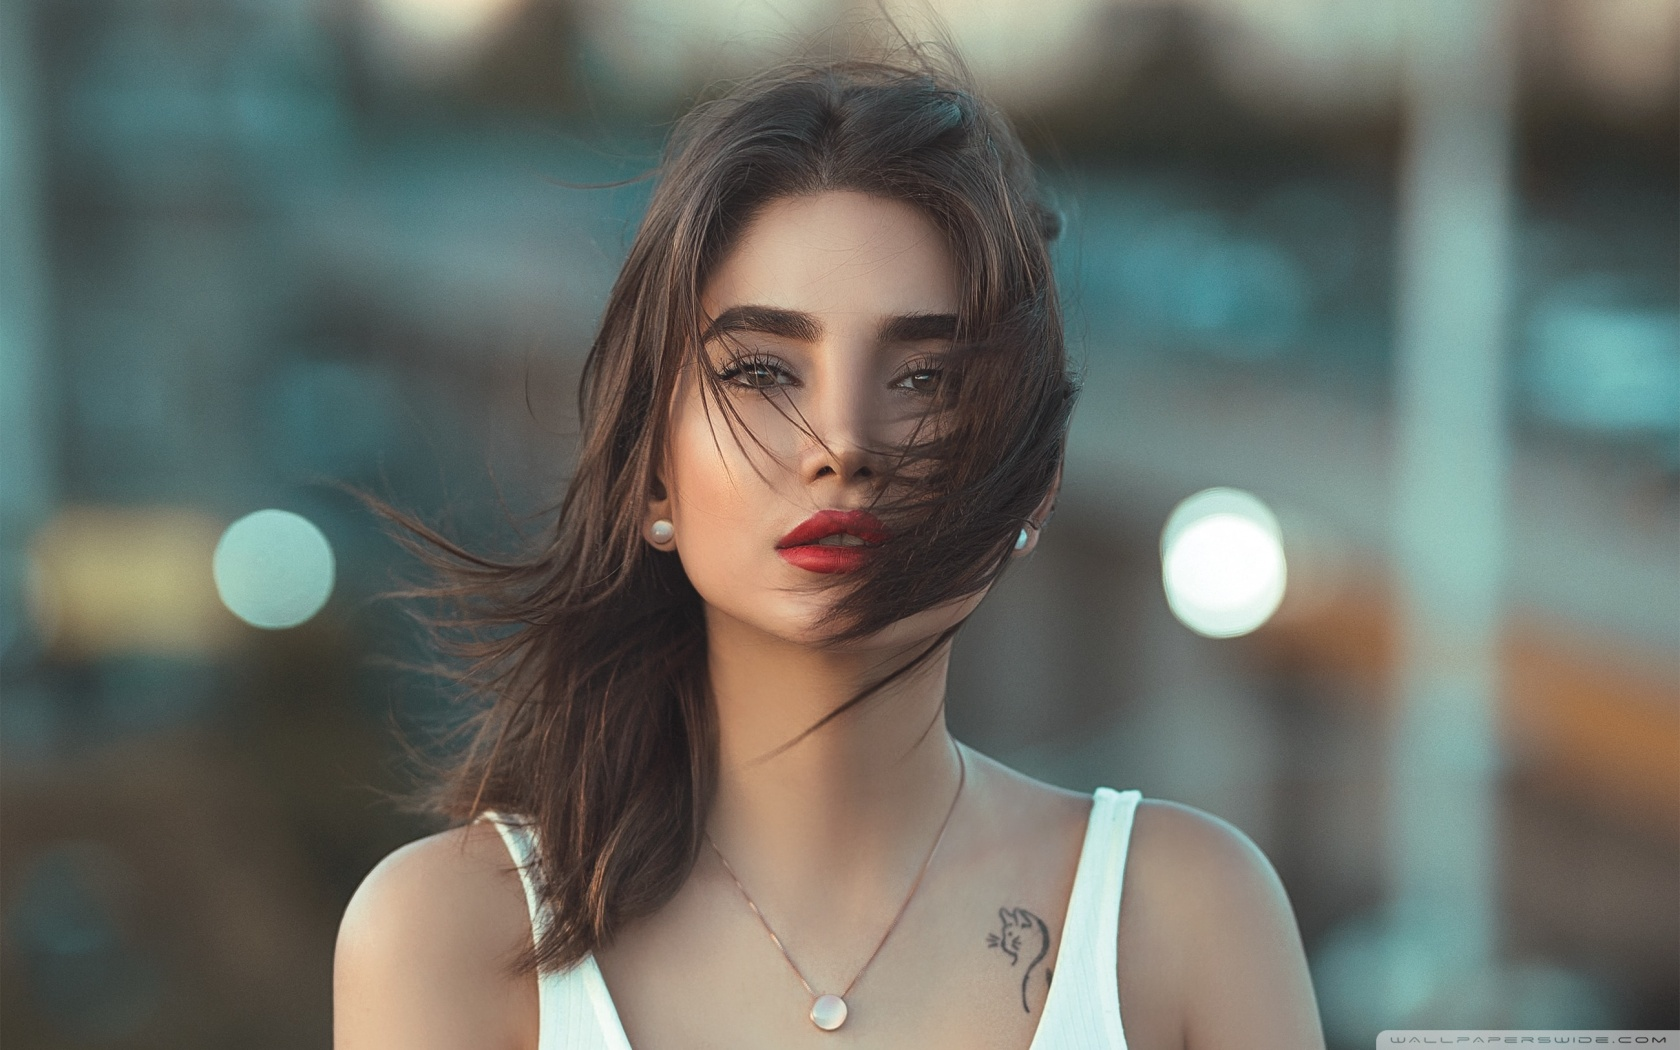 Girl Picture Wallpaper - Pretty Girl Images Download , HD Wallpaper & Backgrounds